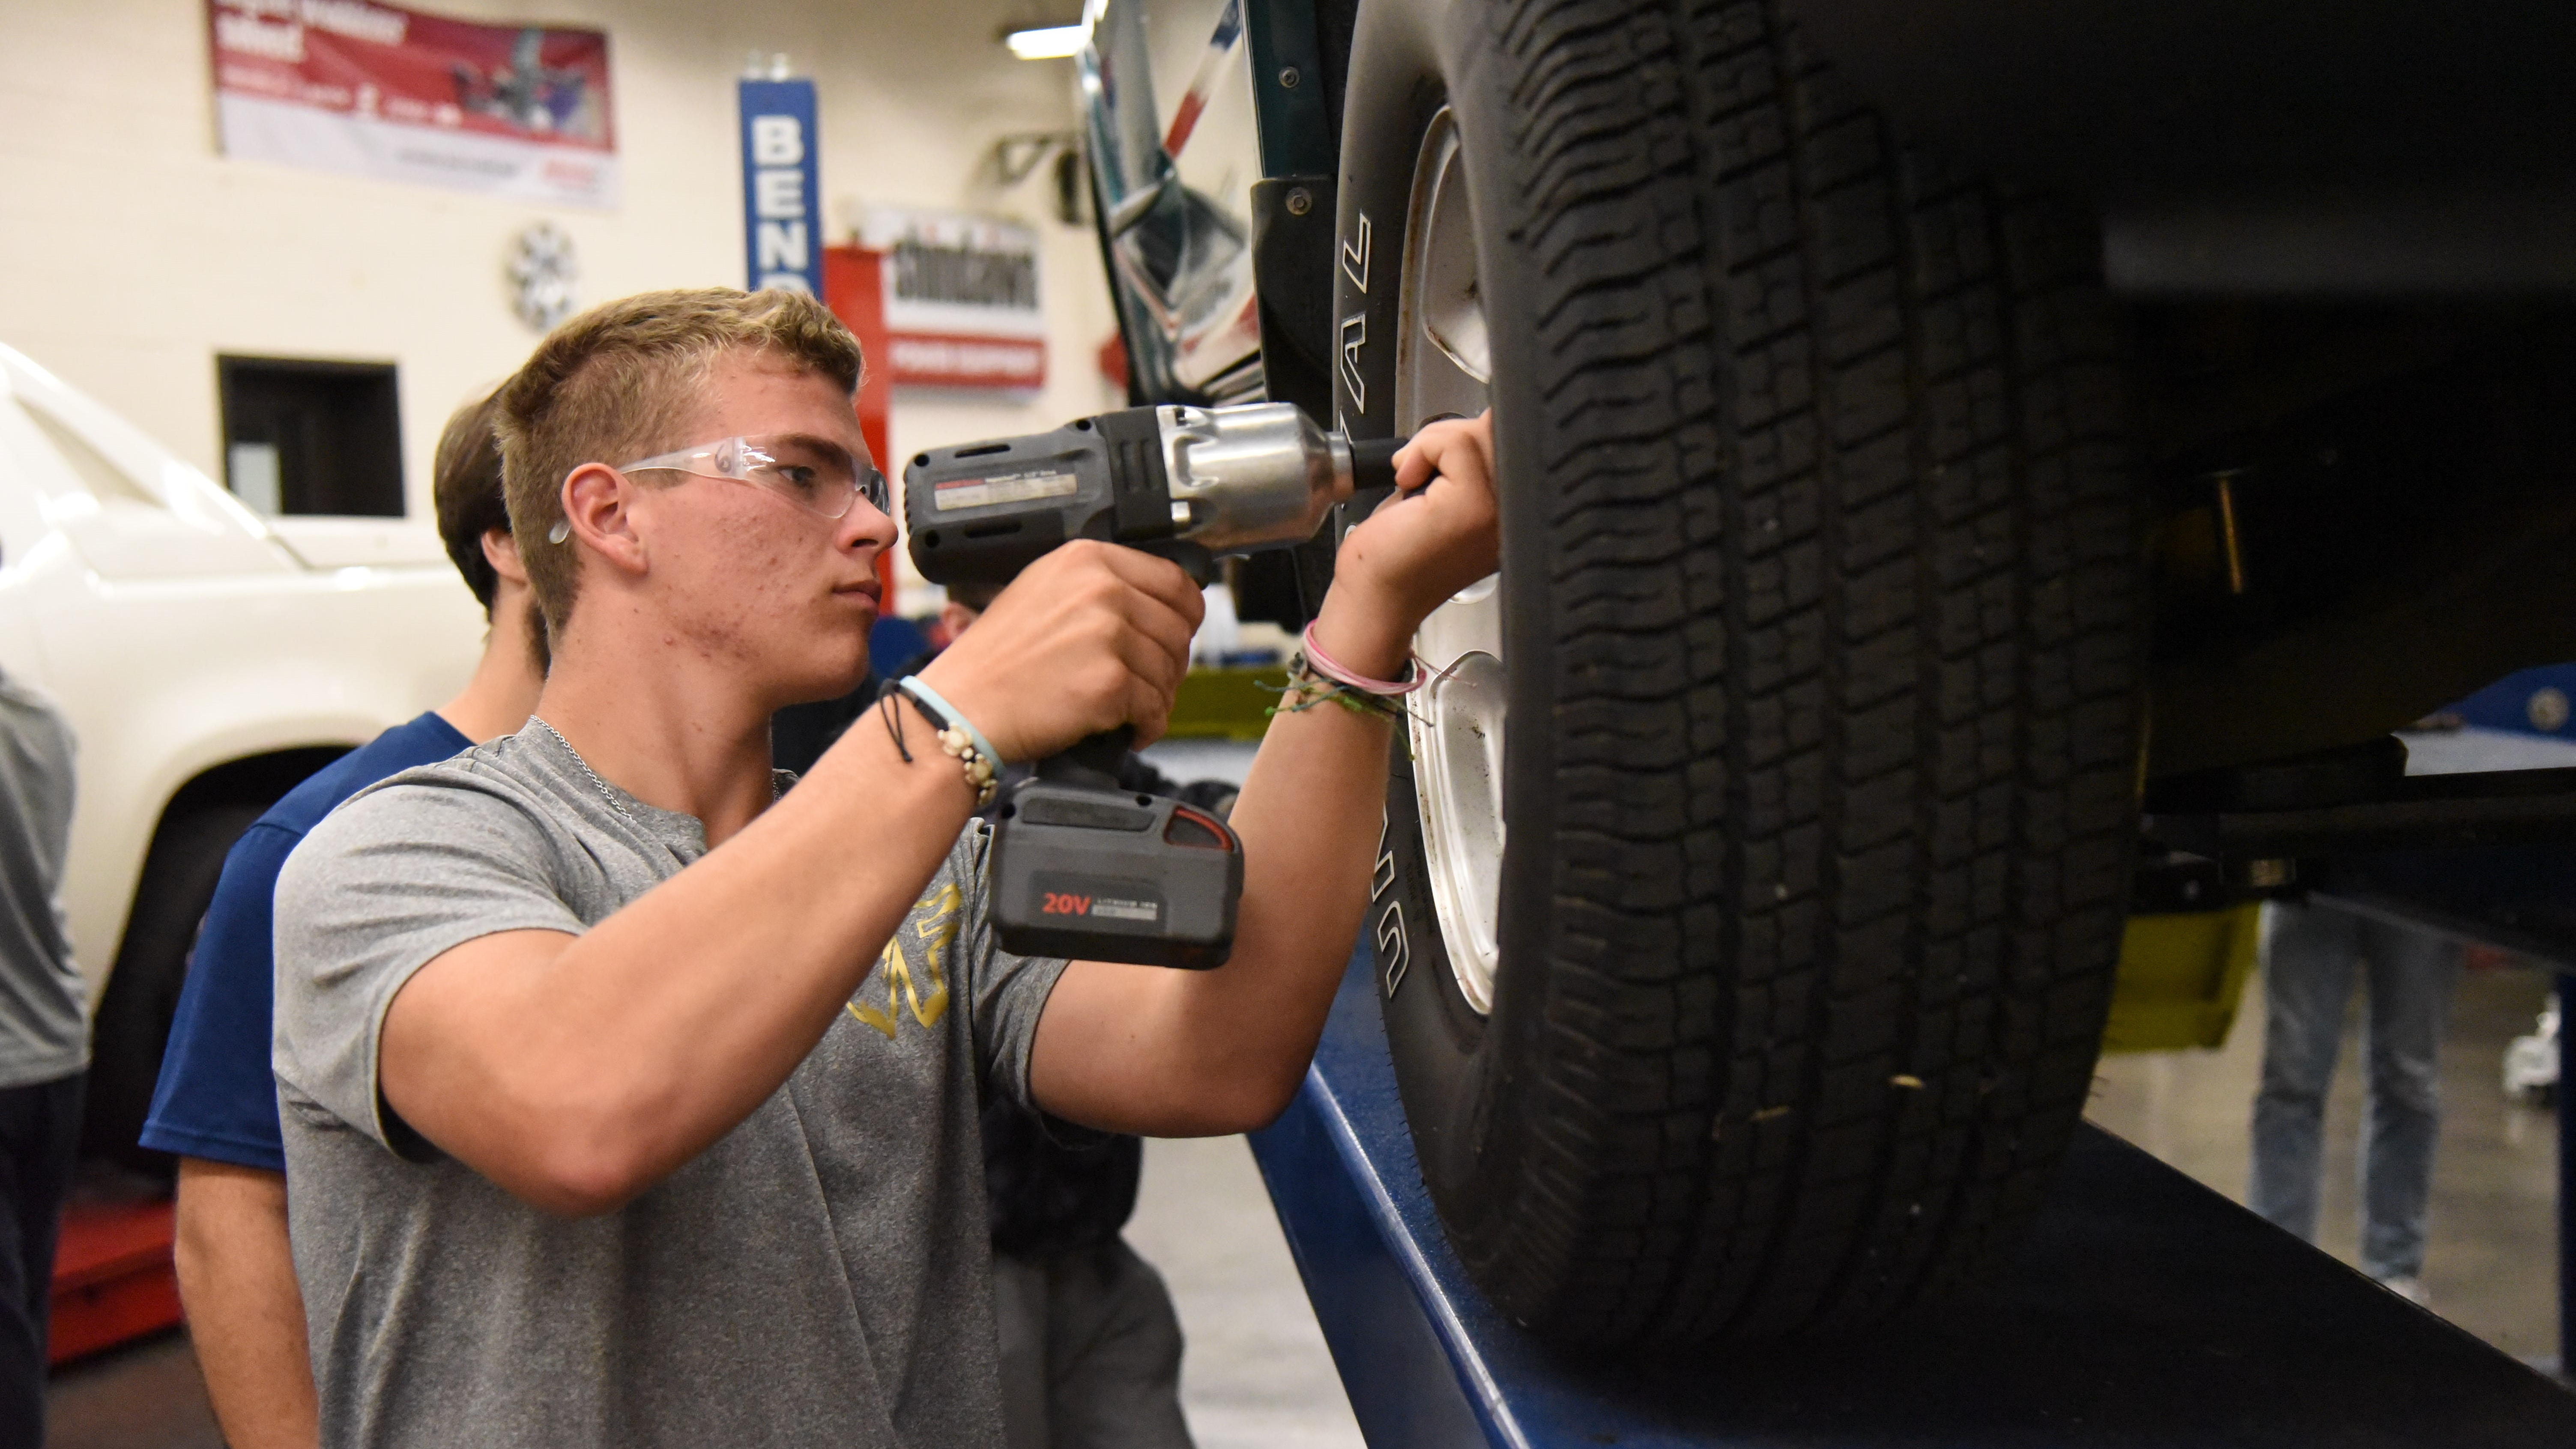 Bryson Harvey, a senior at Gibbs High School, works on a vehicle during a CTE class on Oct. 15, 2019.